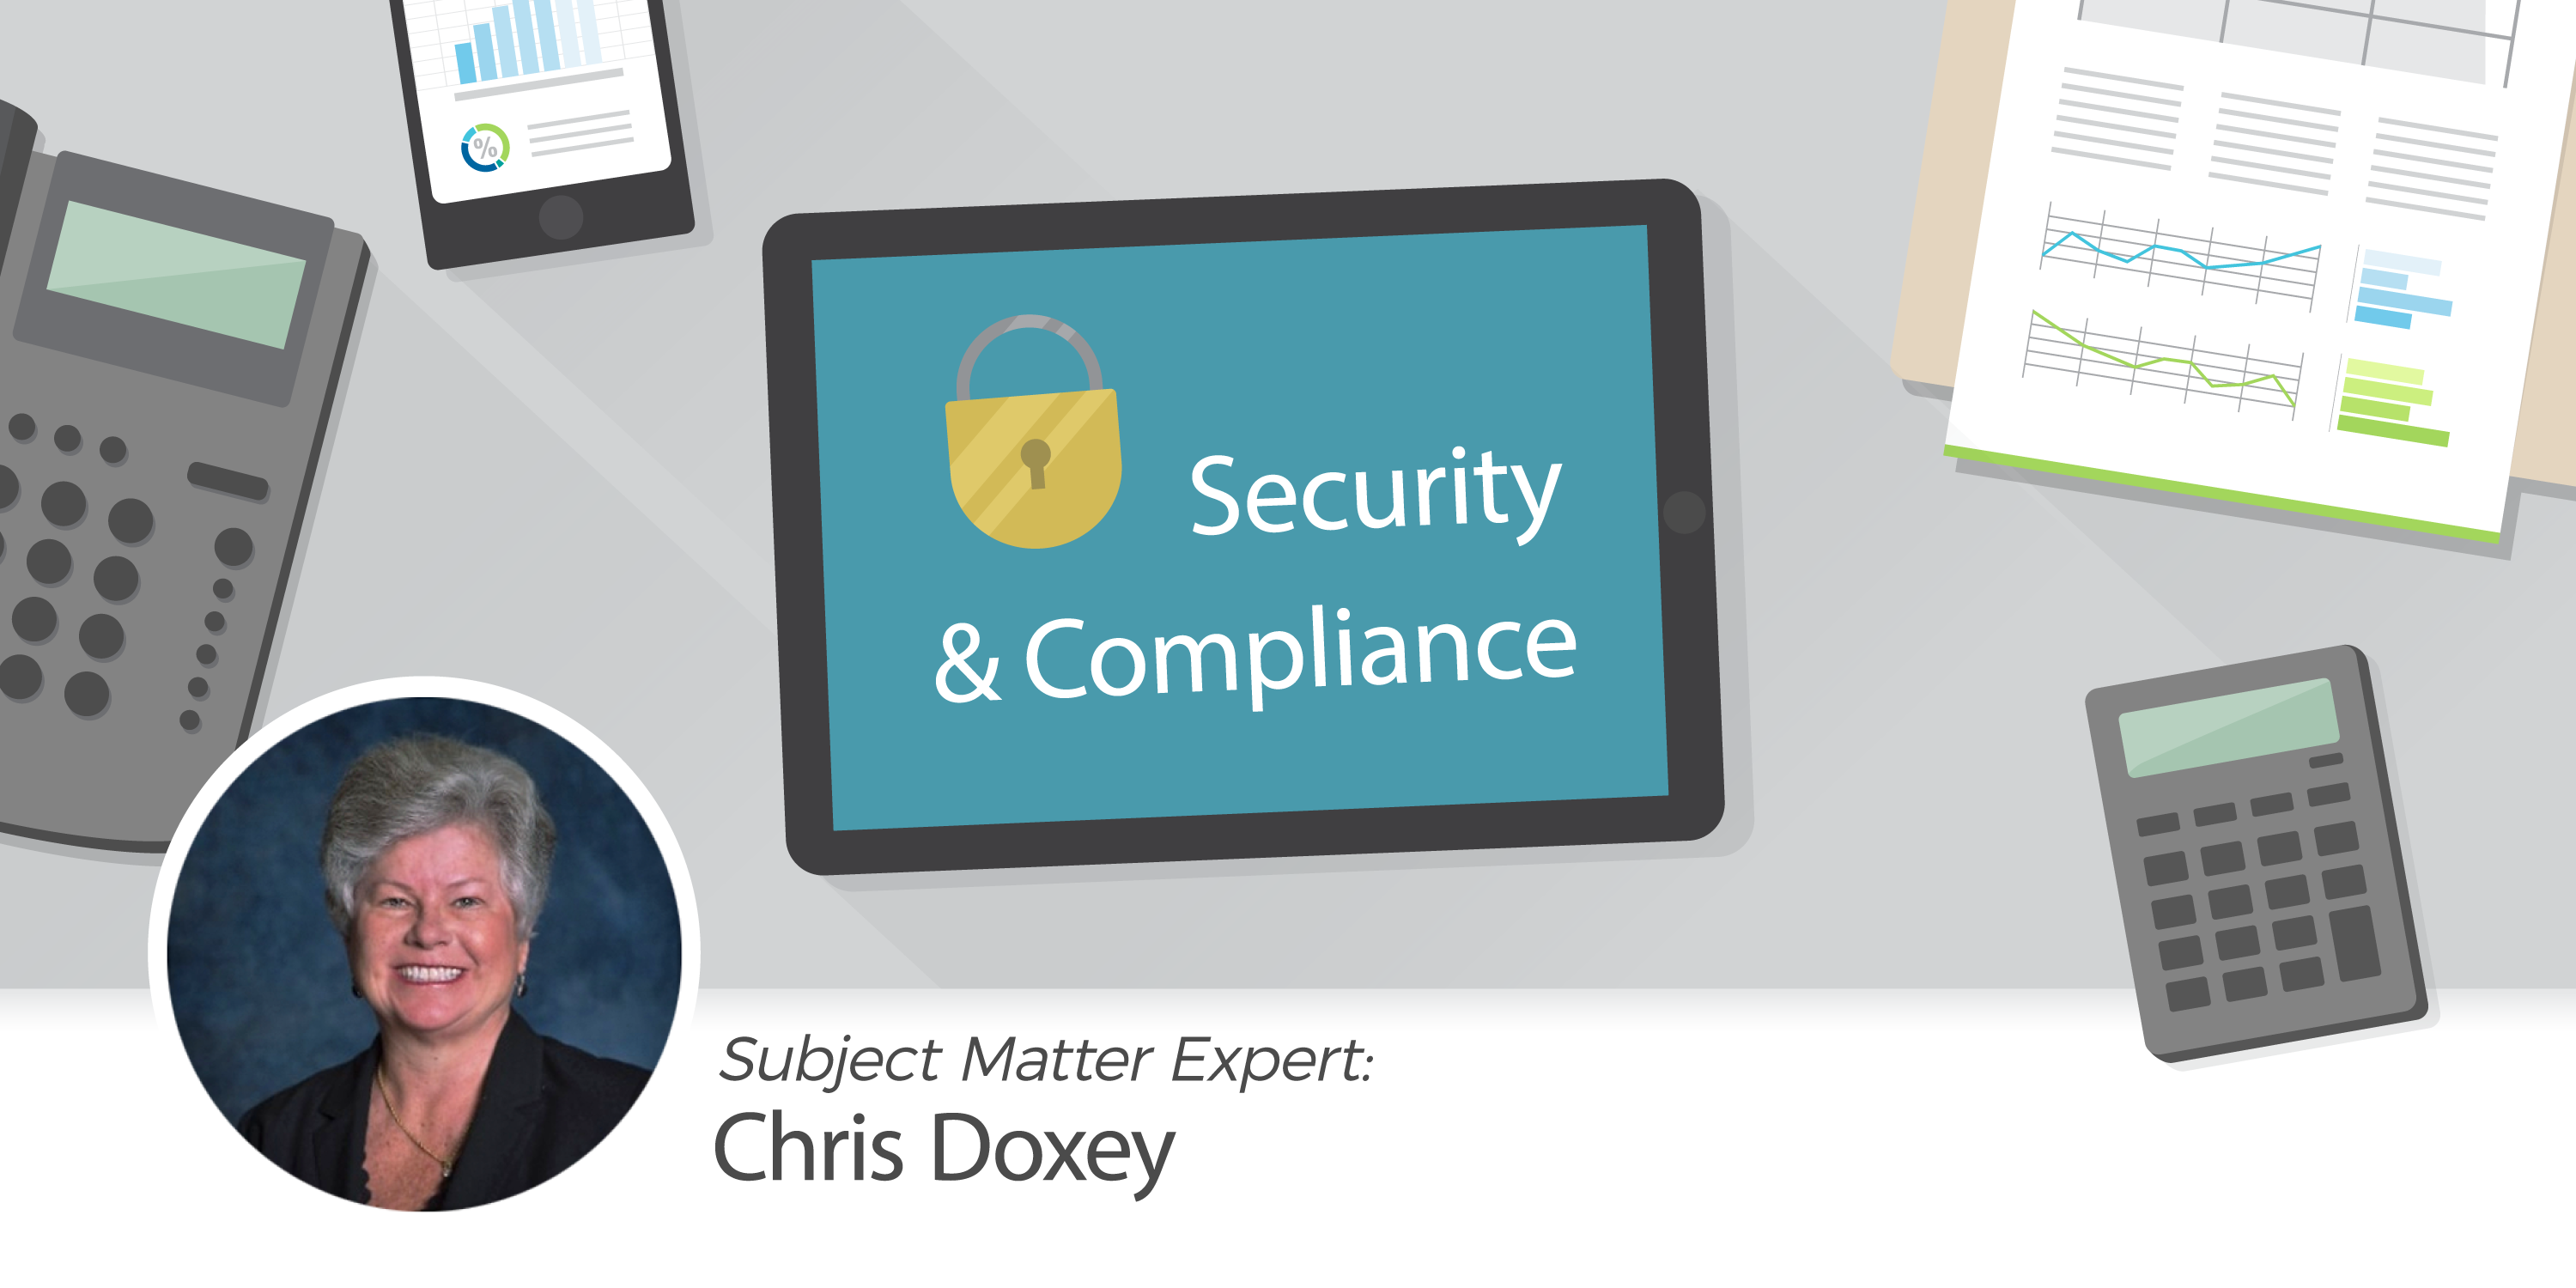 payment security and know your customer controls with Chris Doxey